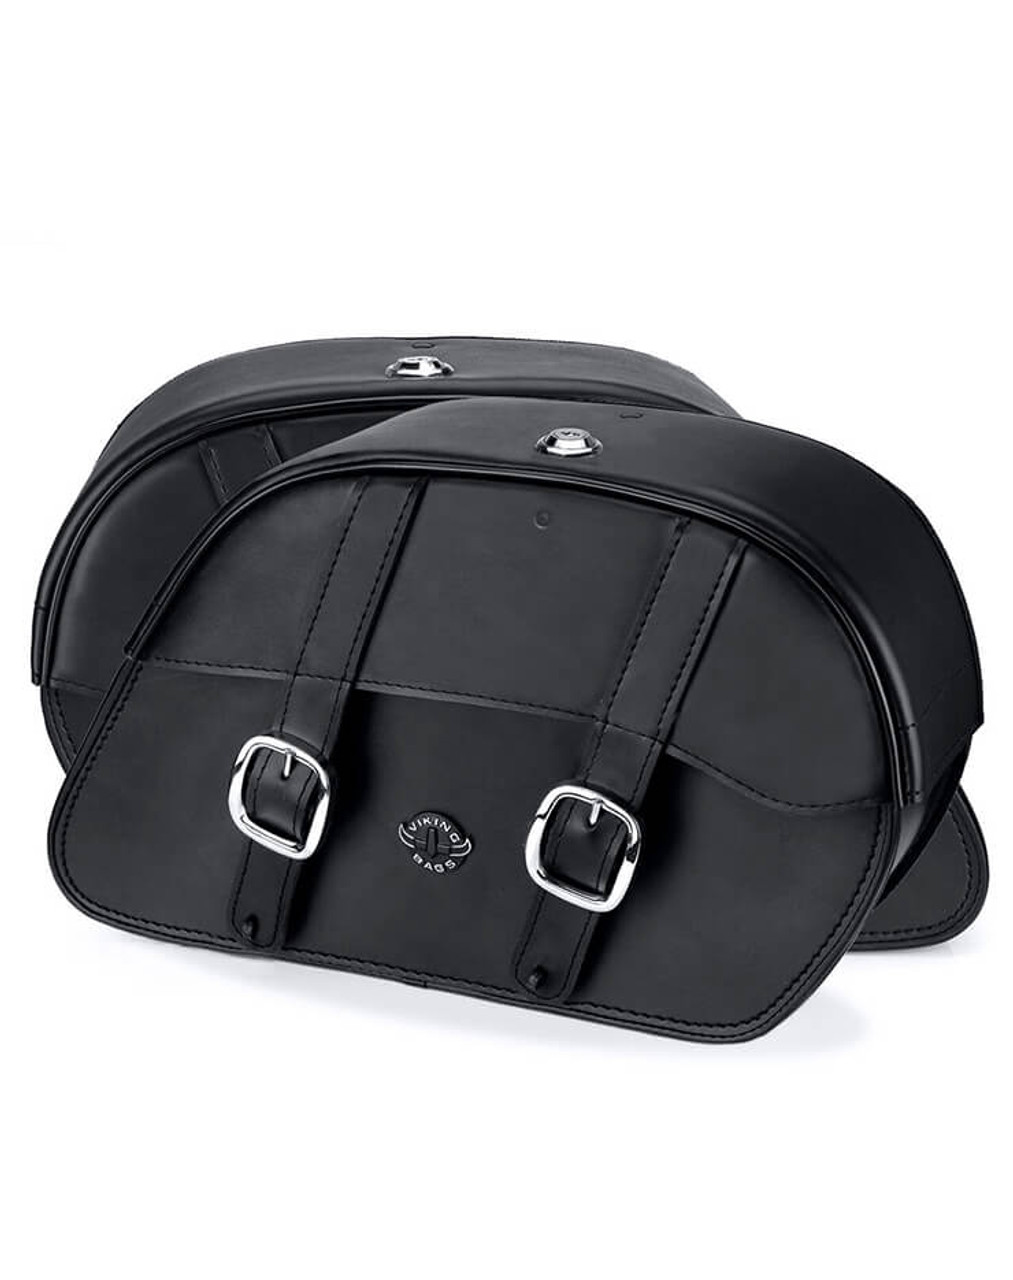 Indian Scout Sixty Charger Slanted Medium Motorcycle Saddlebags Both Bags View